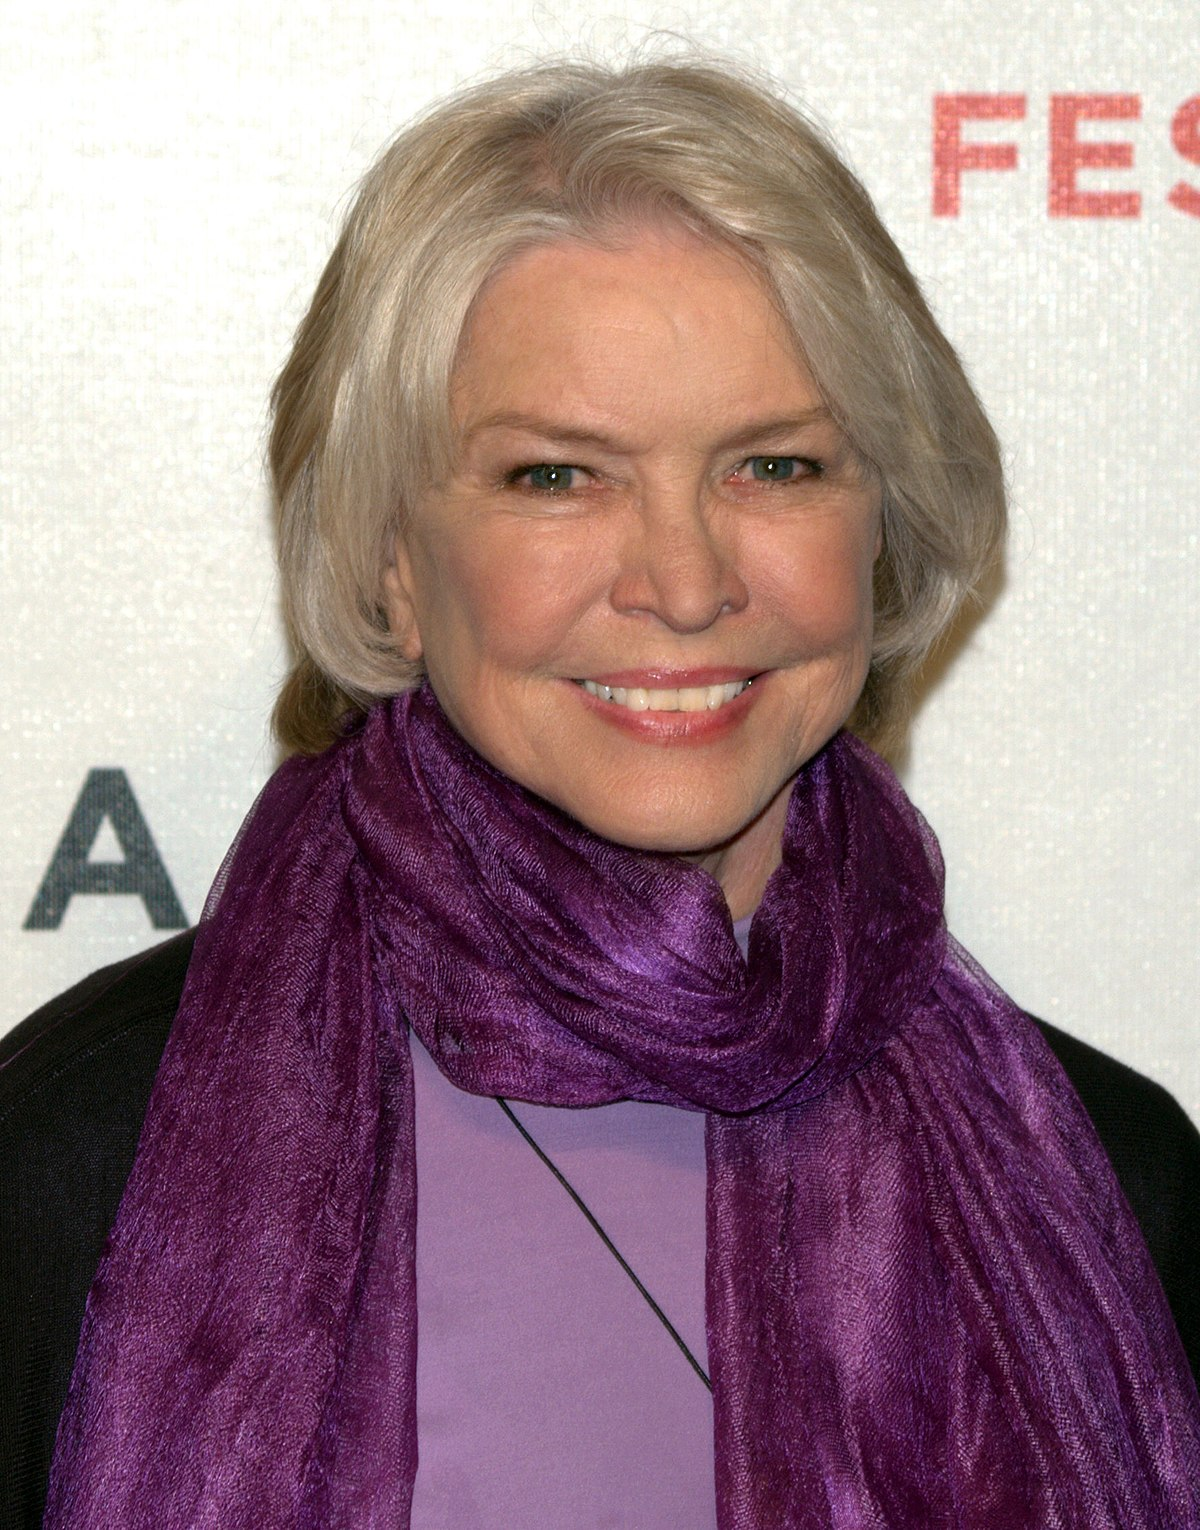 ellen burstyn monologueellen burstyn young, ellen burstyn oscar, ellen burstyn twitter, ellen burstyn wikipedia, ellen burstyn 2016, ellen burstyn height, ellen burstyn house of cards, ellen burstyn oscar requiem, ellen burstyn is she muslim, ellen burstyn oscar nomination, ellen burstyn, ellen burstyn requiem for a dream, ellen burstyn wiki, ellen burstyn exorcist, ellen burstyn interstellar, ellen burstyn resurrection, ellen burstyn 2015, ellen burstyn monologue, ellen burstyn photos, ellen burstyn actress